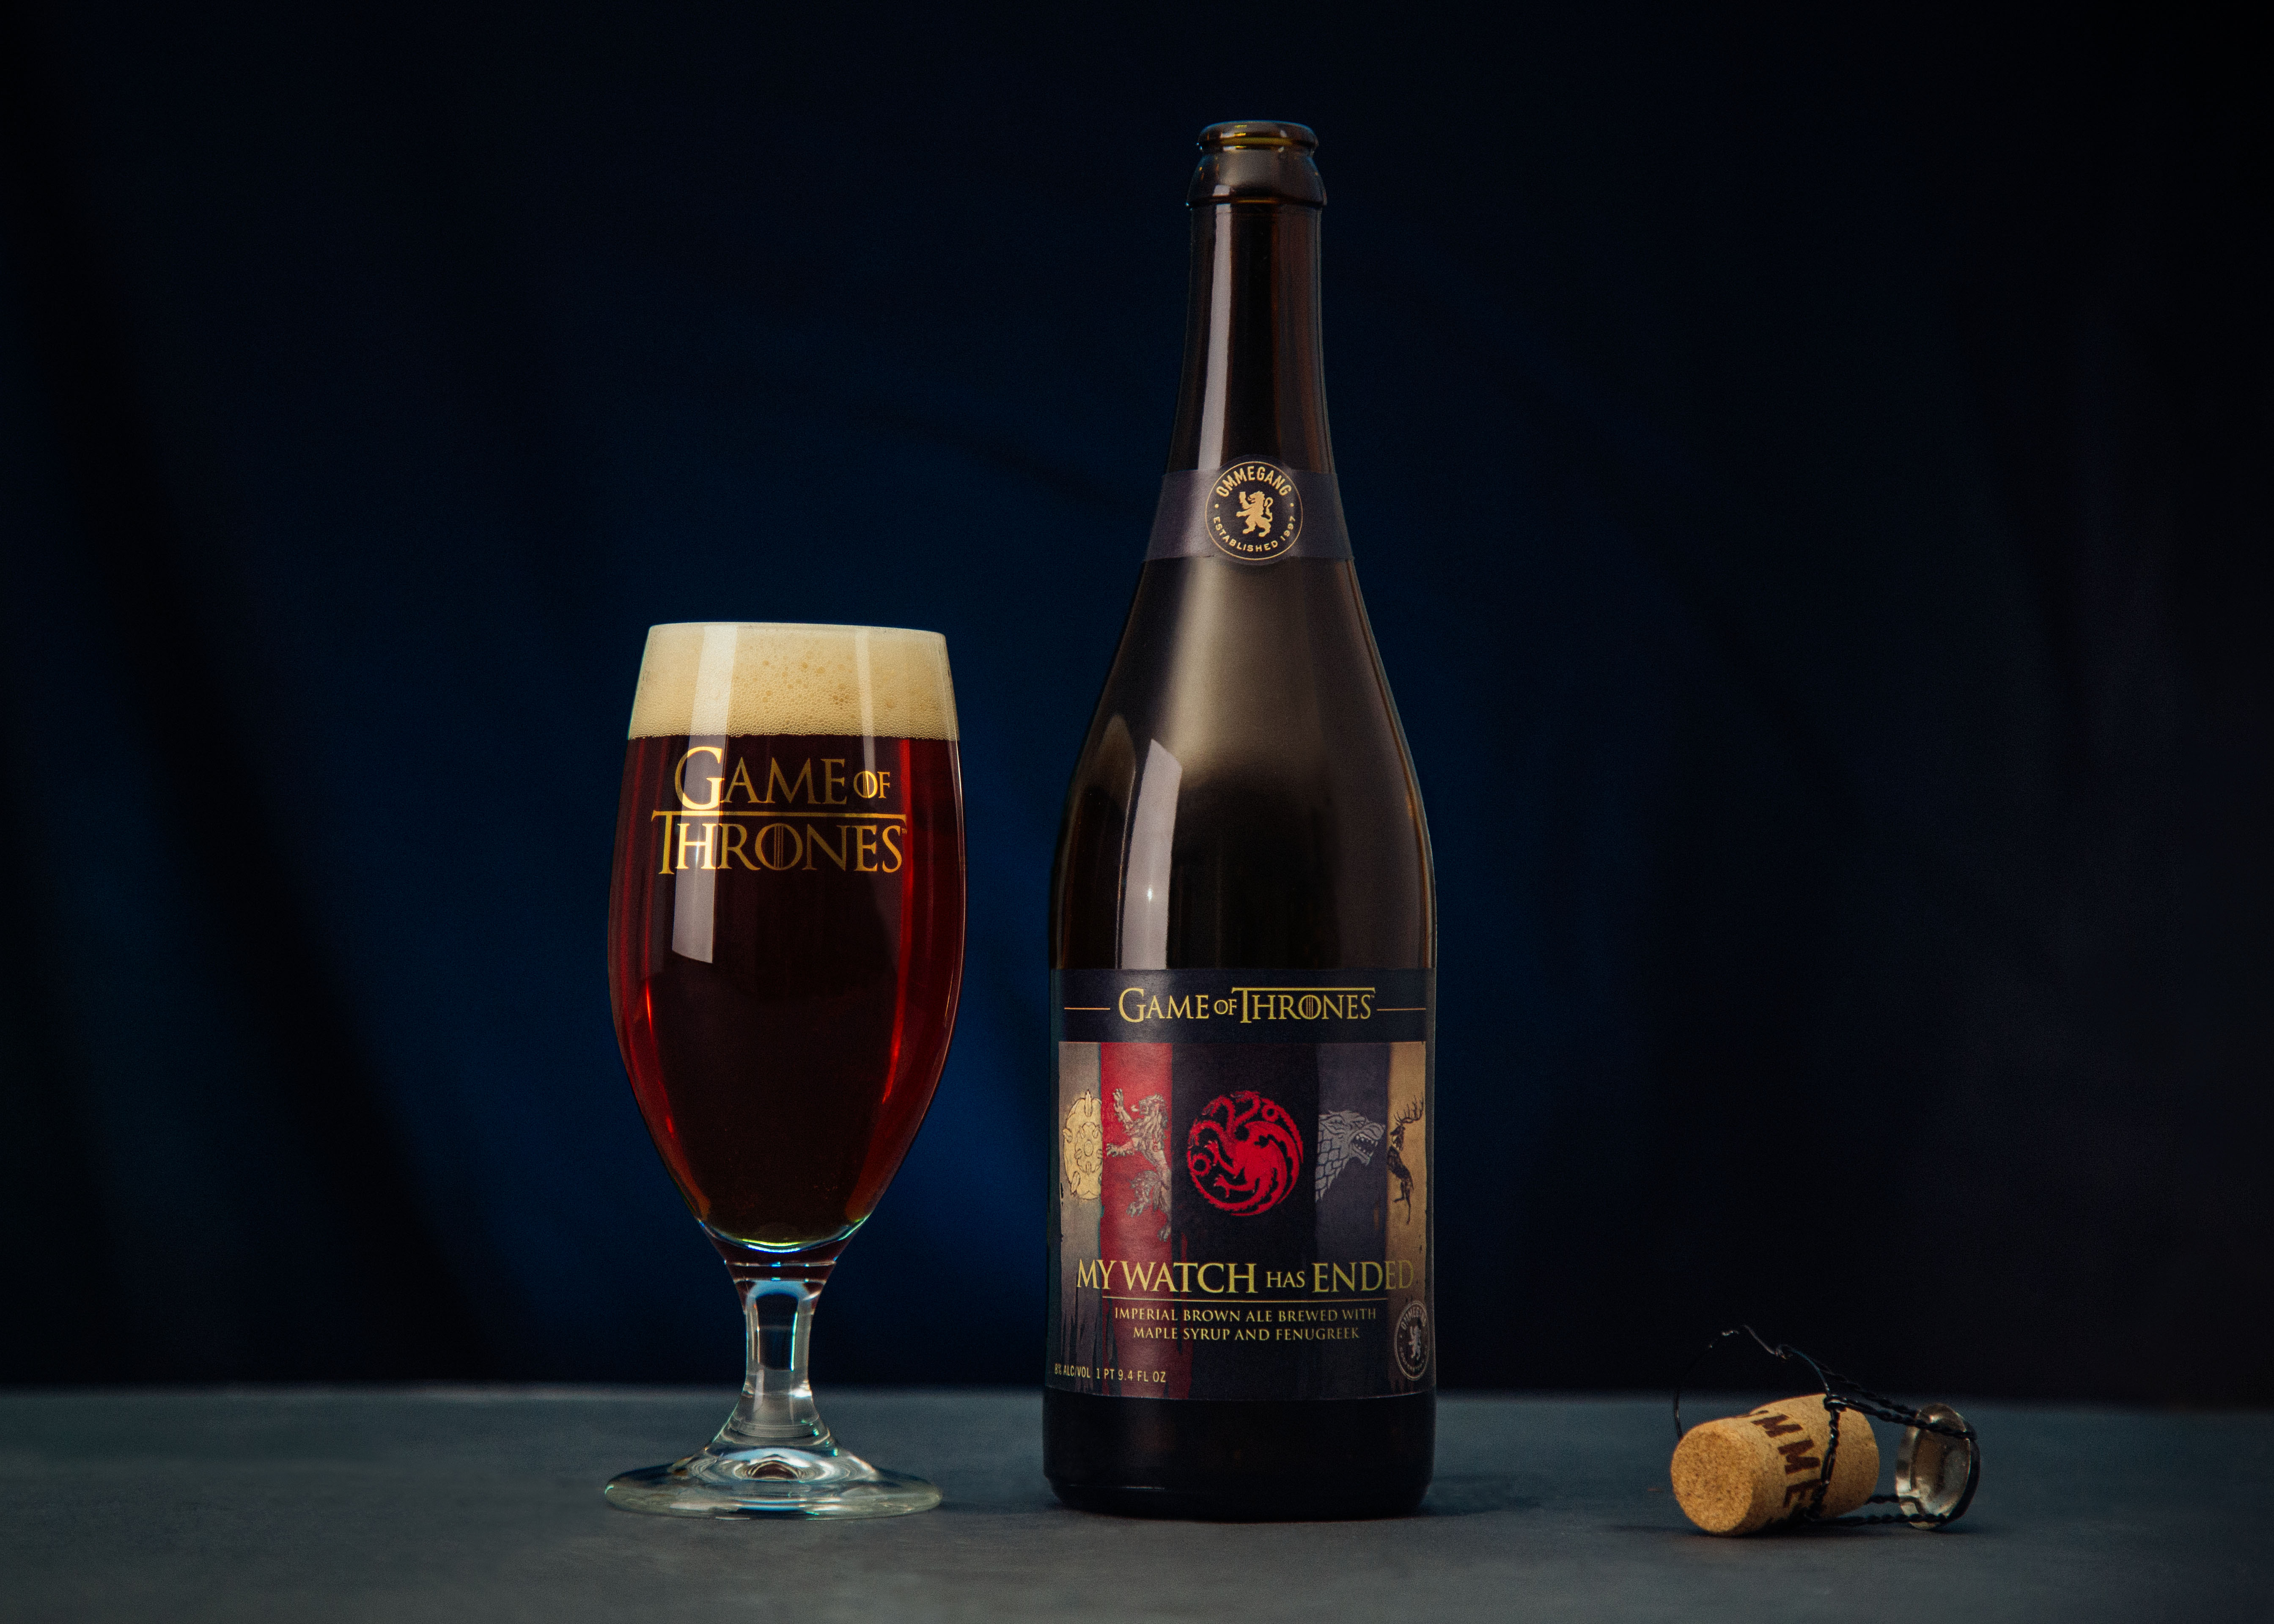 Brewery Ommegang and HBO announce My Watch Has Ended, a beer to celebrate the end of Game of Thrones